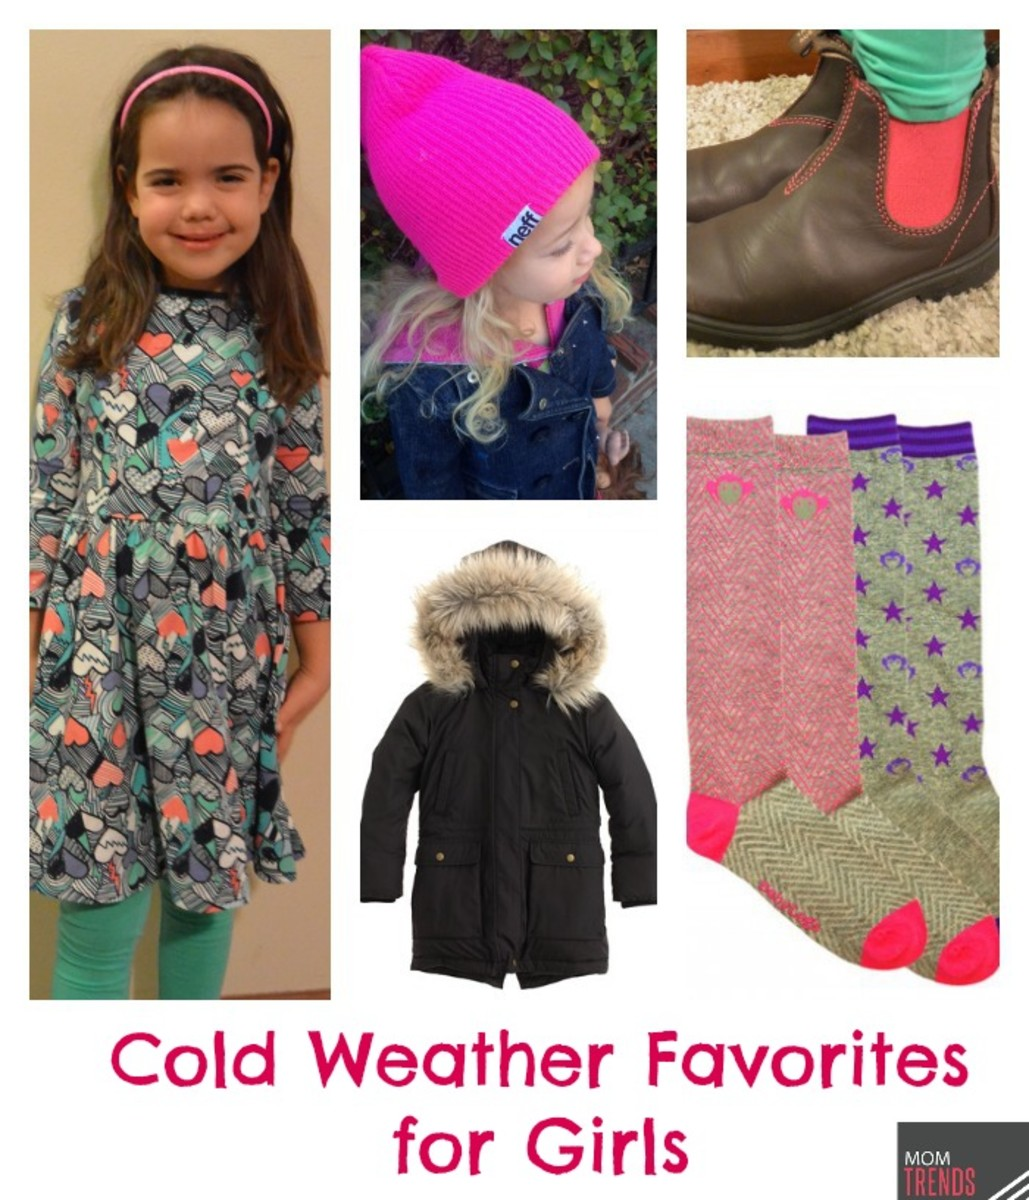 Cold Weather Favorites for Girls